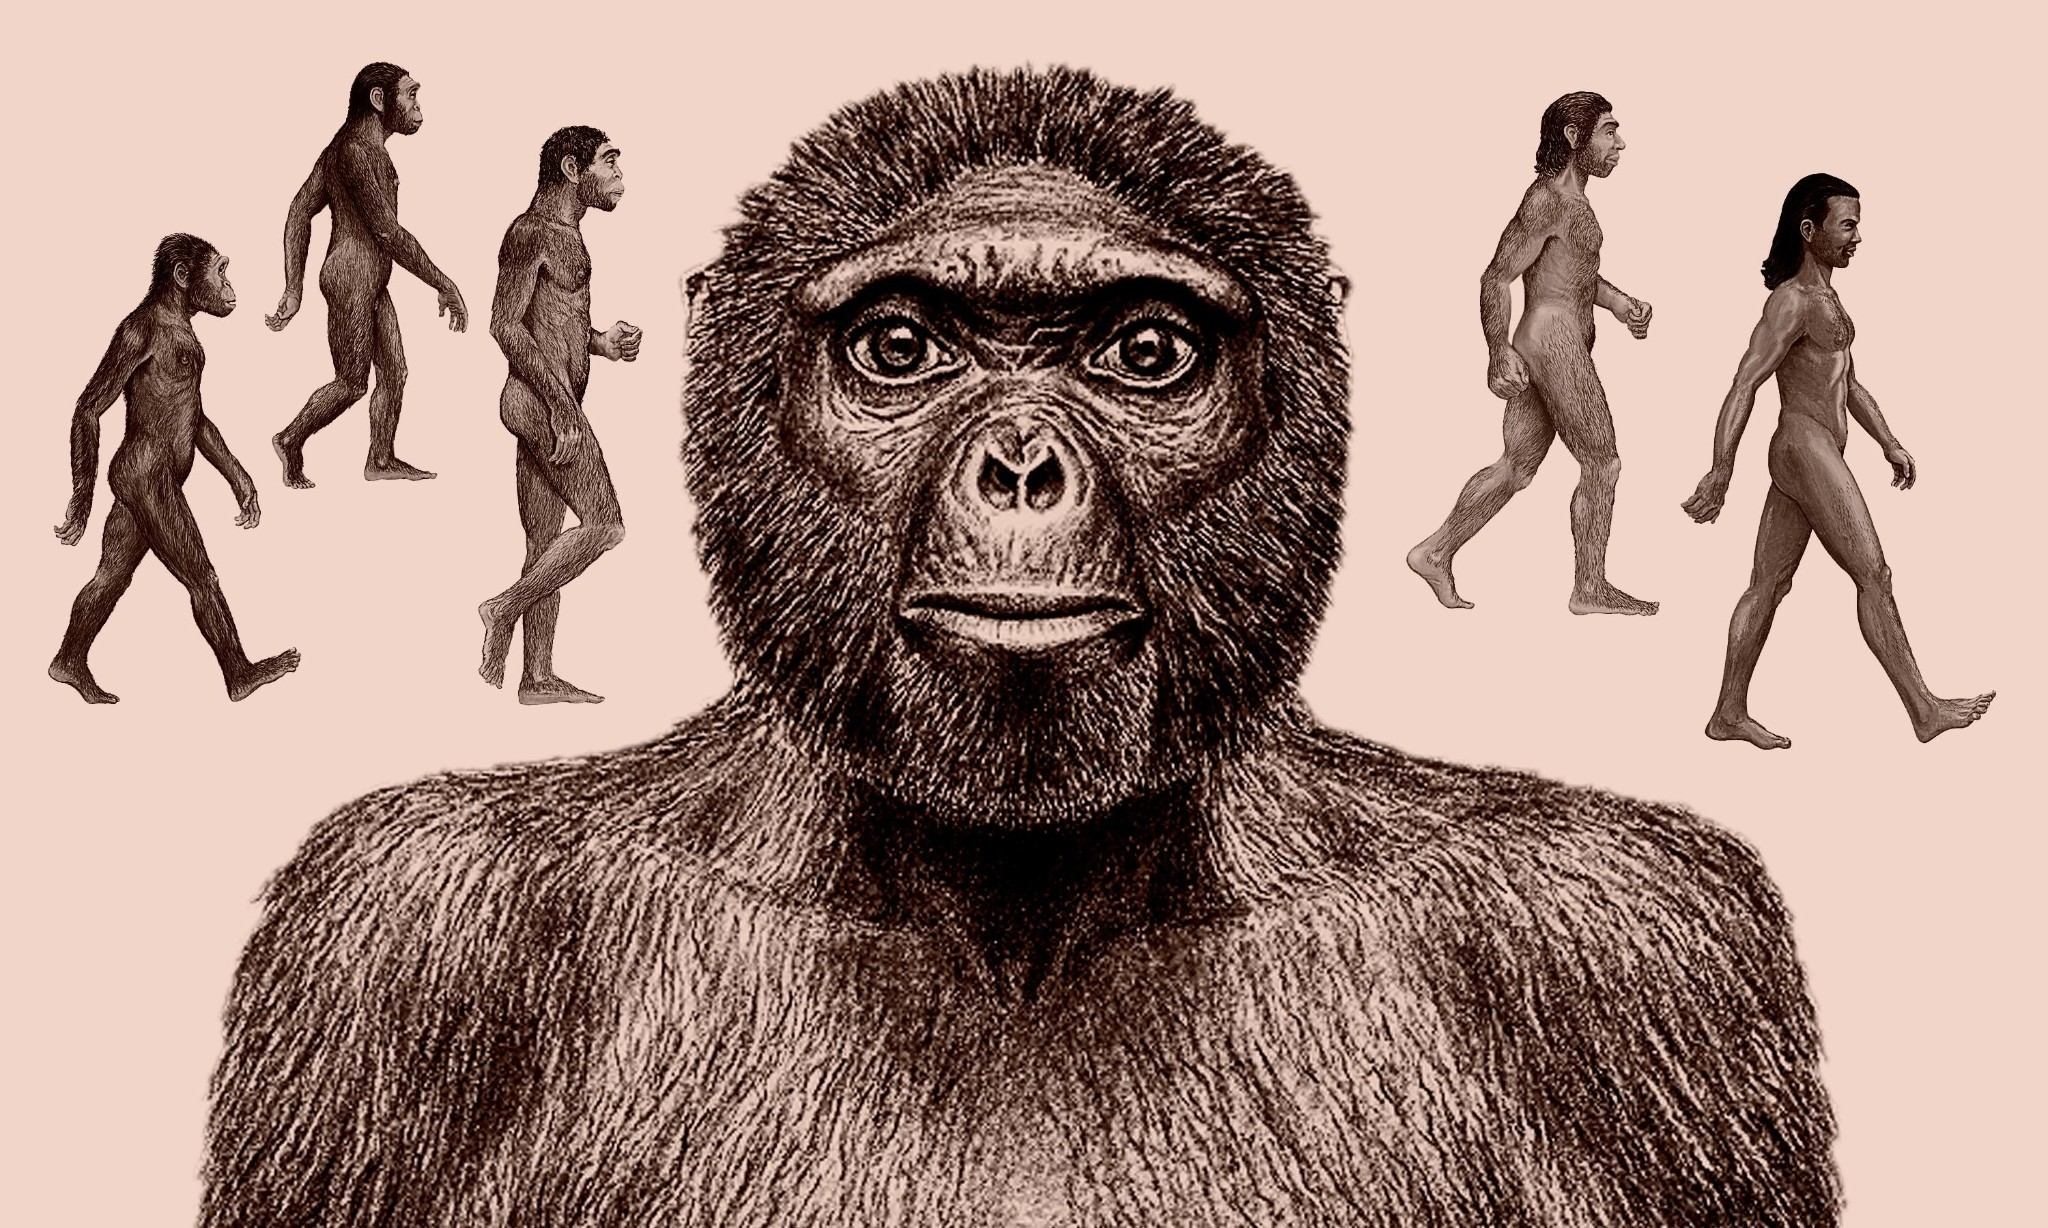 Tracing the tangled tracks of humankind's evolutionary journey